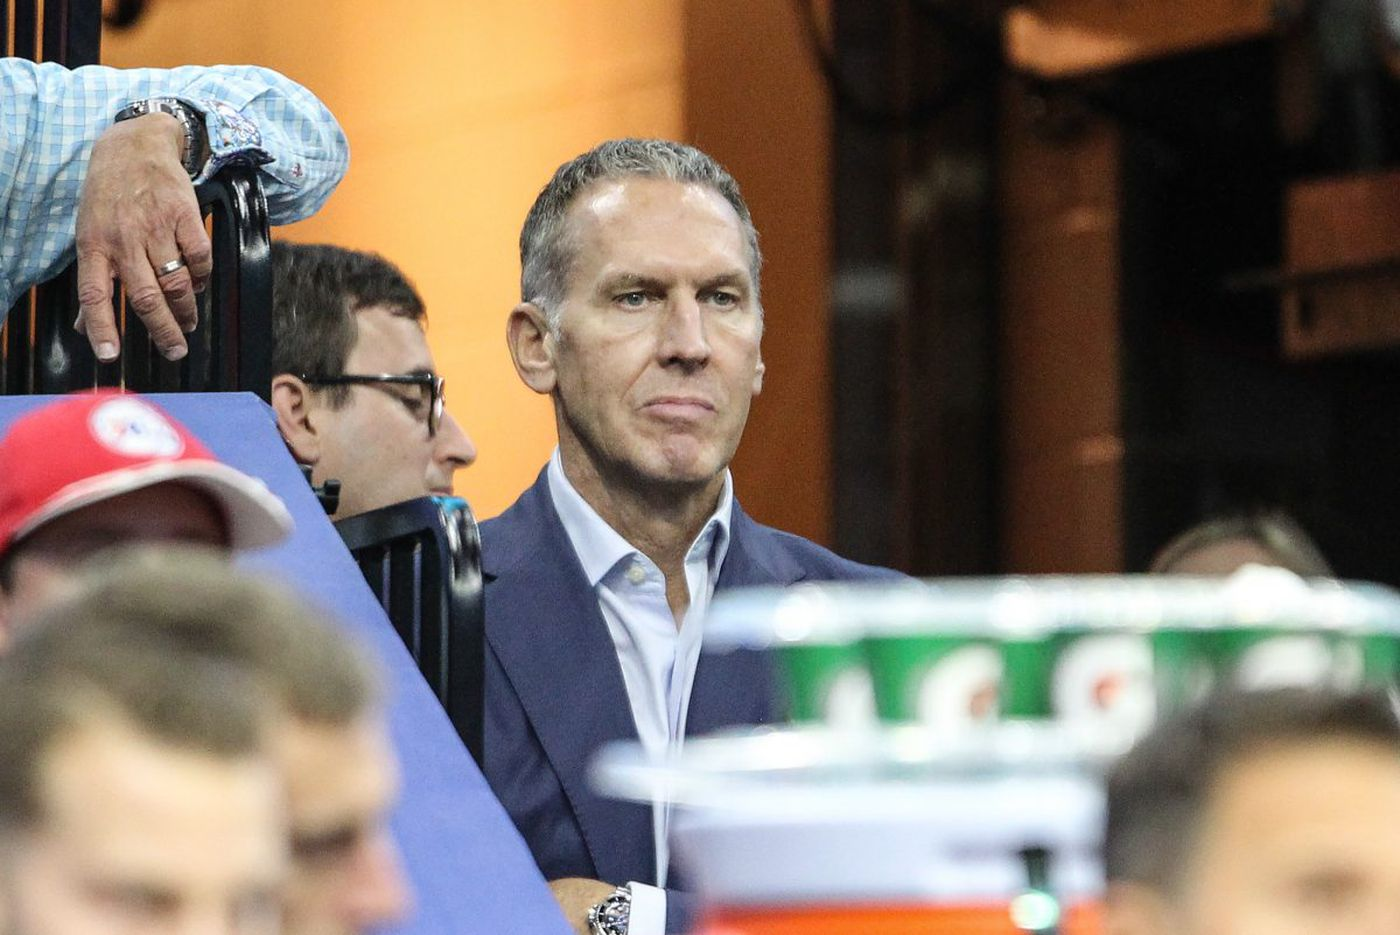 Why famous people like Bryan Colangelo use burner accounts